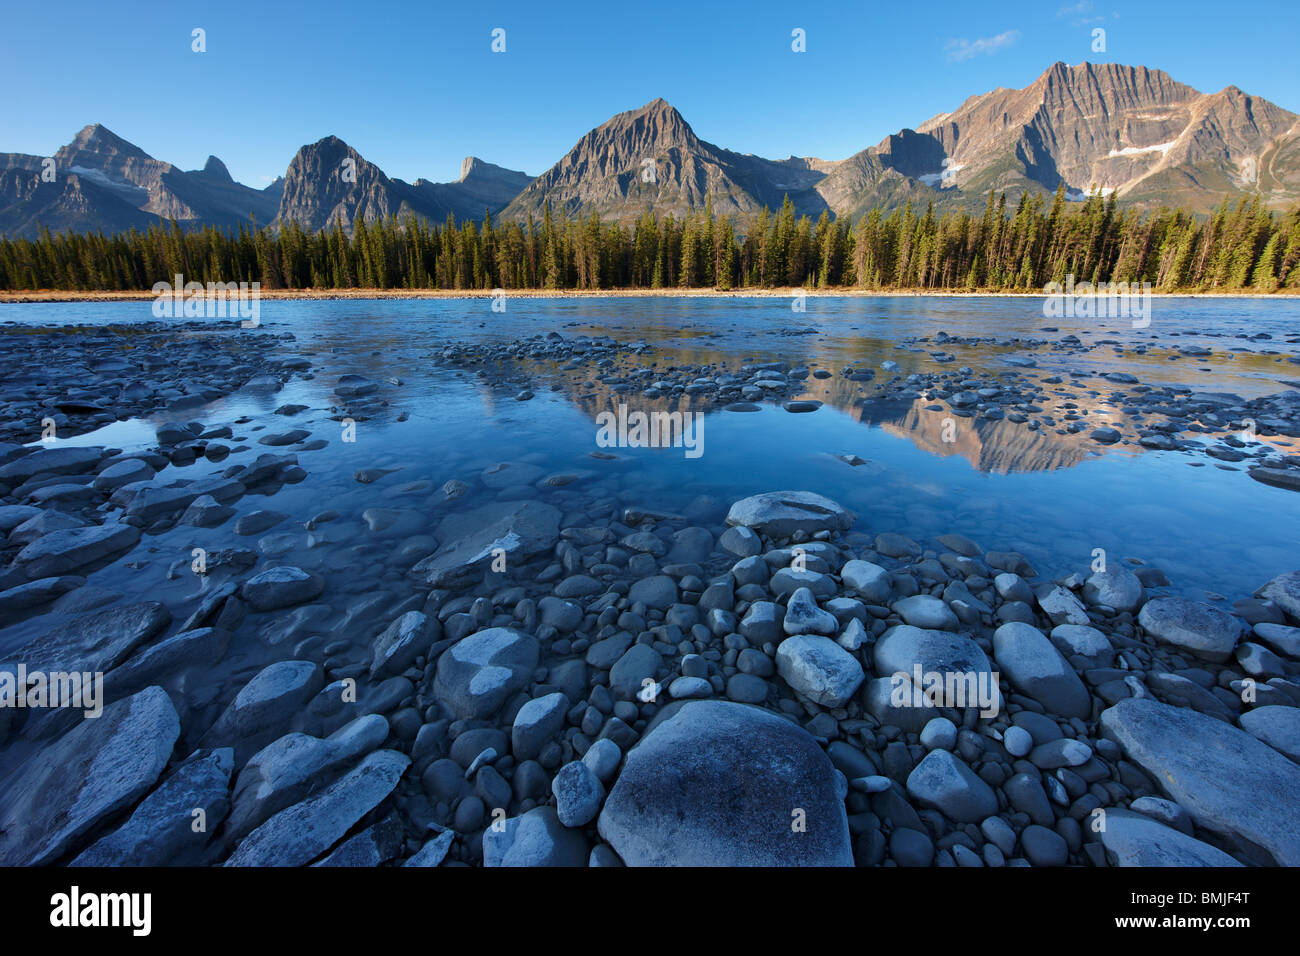 the Athabasca River with Mt Fryatt & Brussels Peak at dawn, Jasper National Park, Alberta, Canada - Stock Image